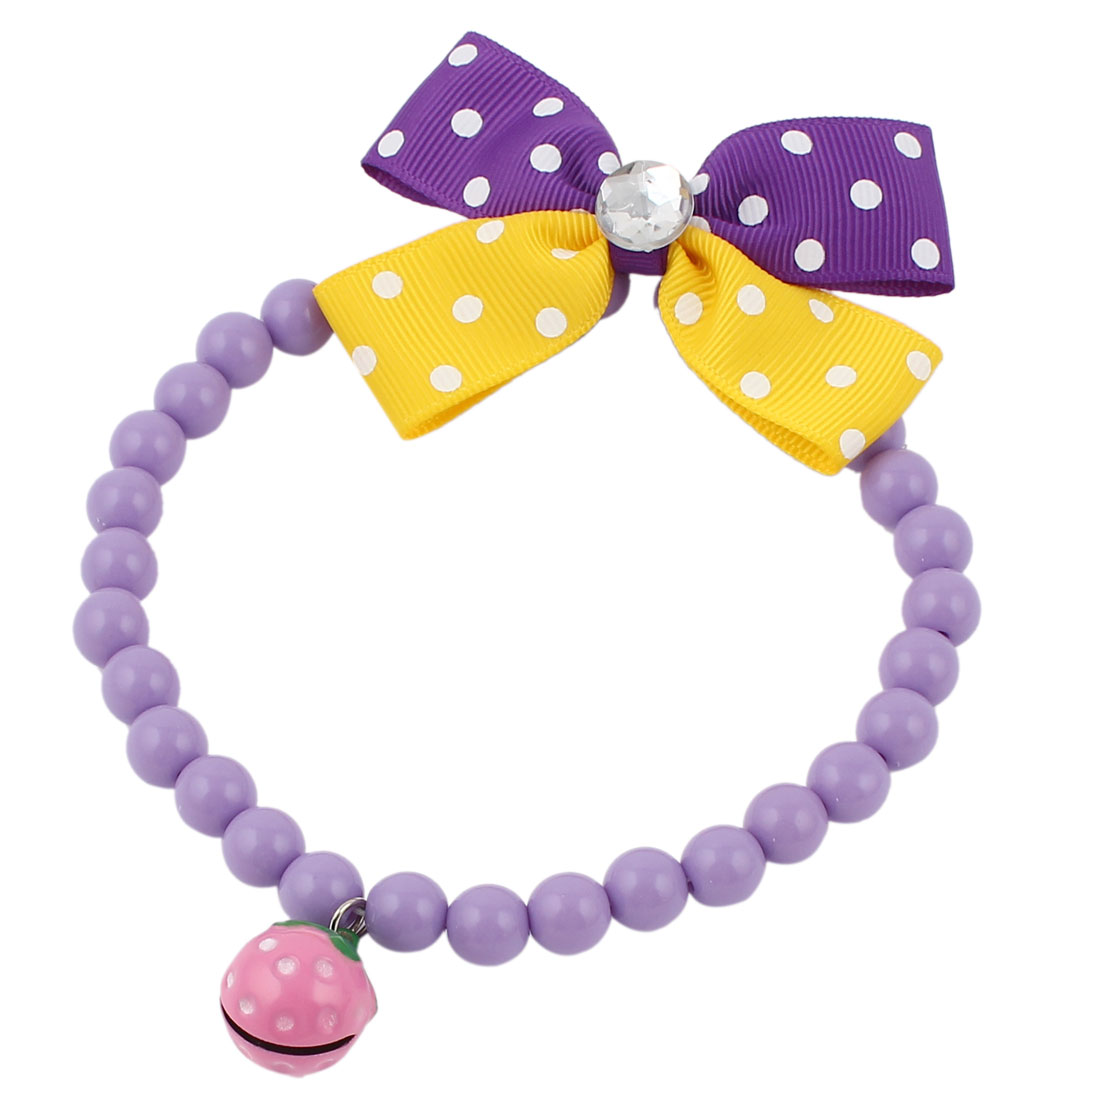 Metal Bell Pendant Bowtie Accent Pet Dog Plastic Beads Collar Necklace Purple Yellow M